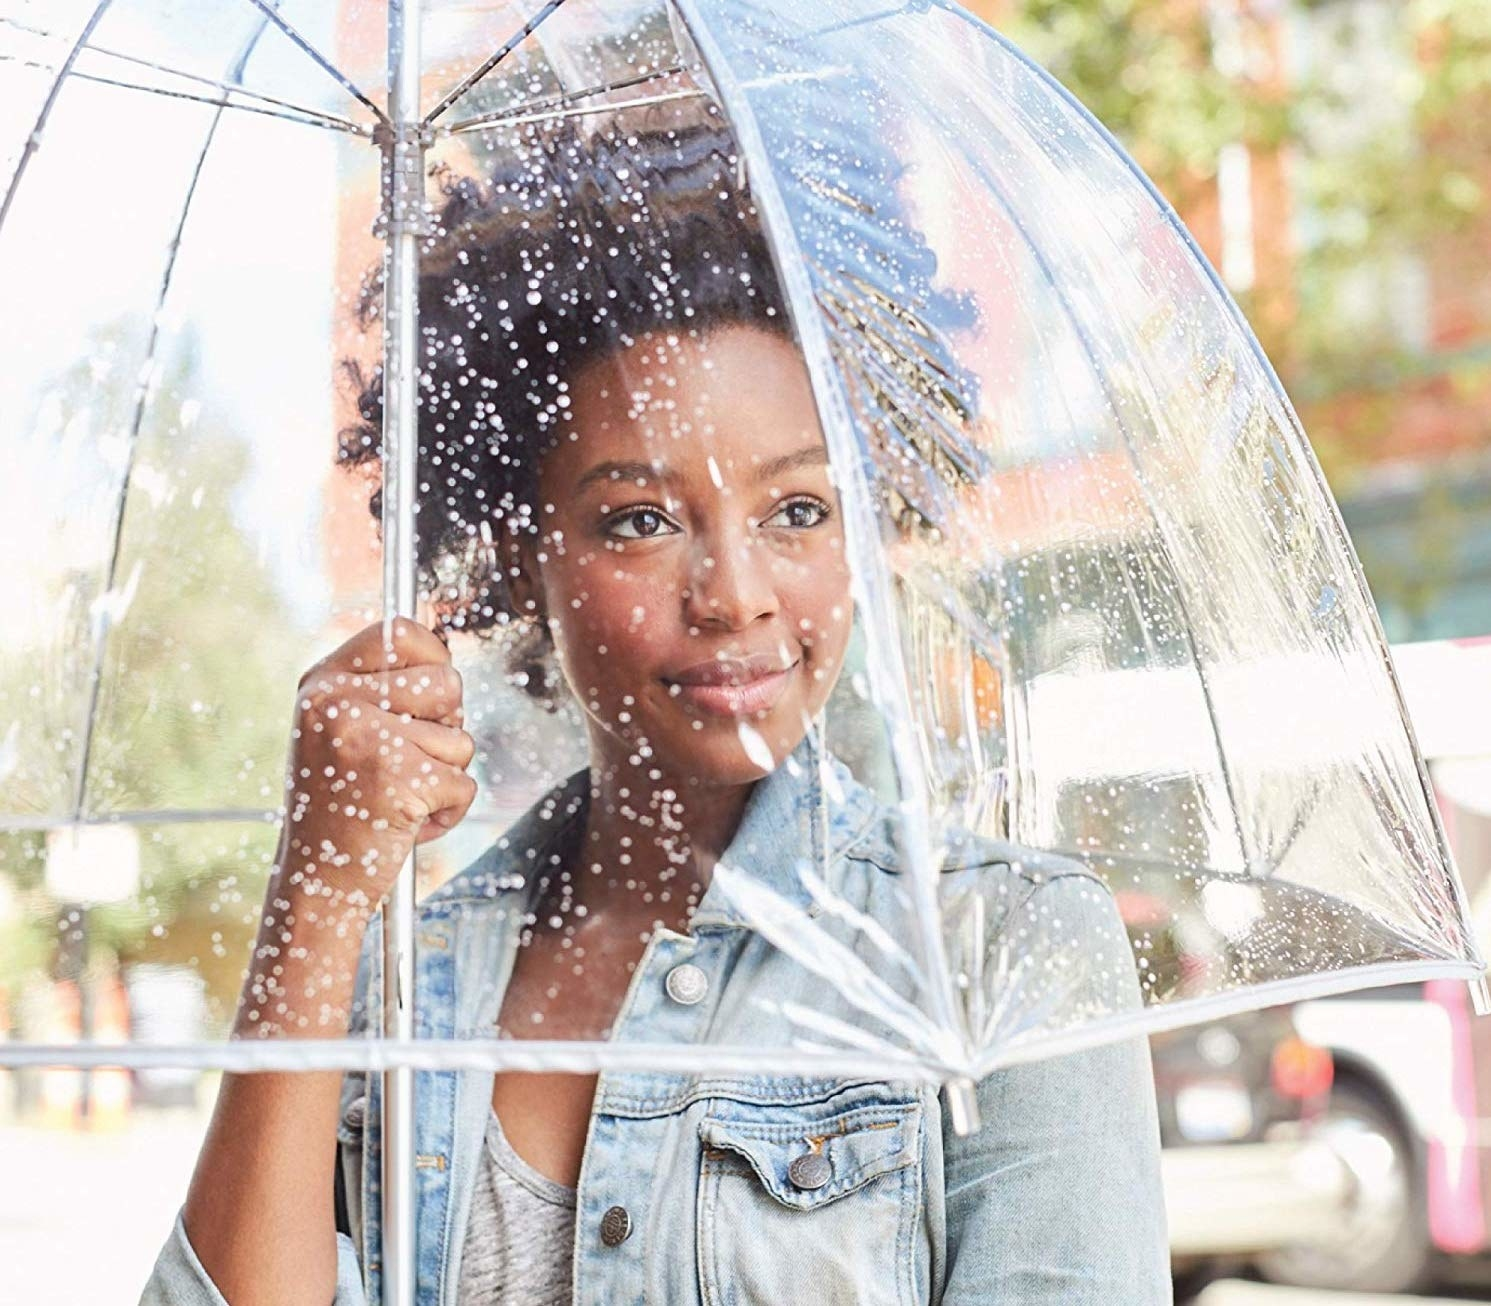 A person holding the dome-shaped umbrella